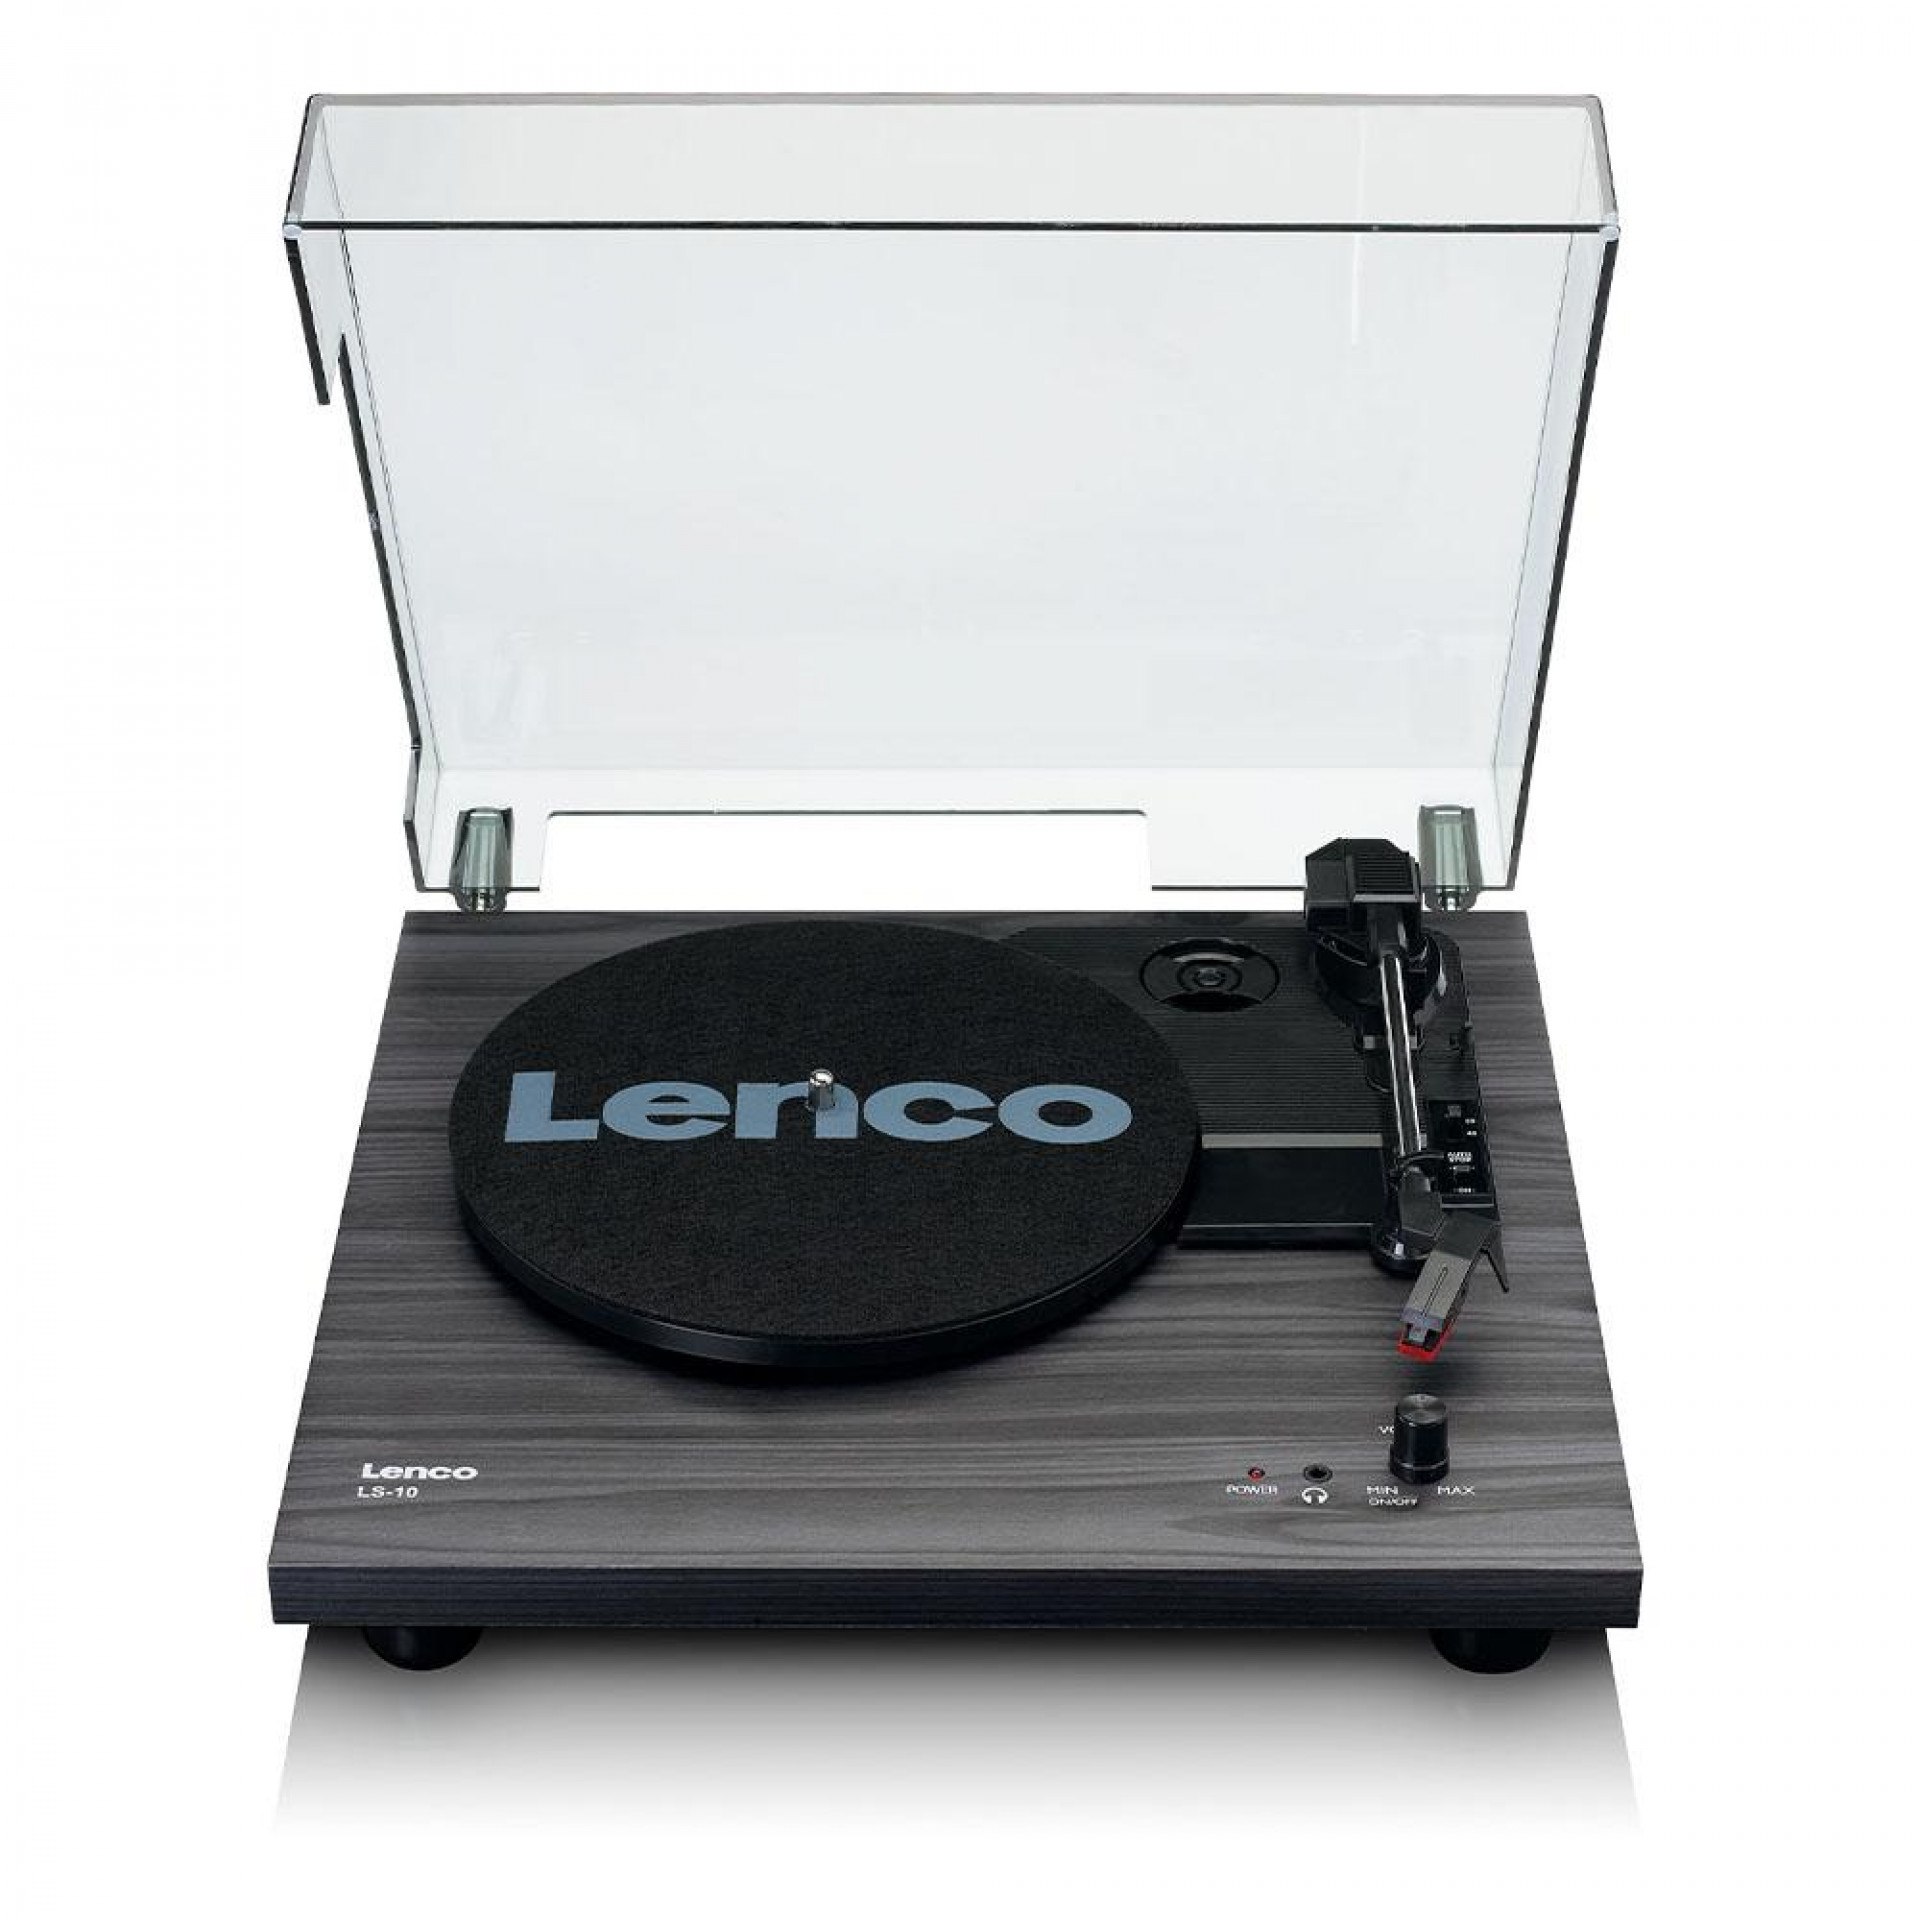 Lenco LS-10BK w/ built-in speakers